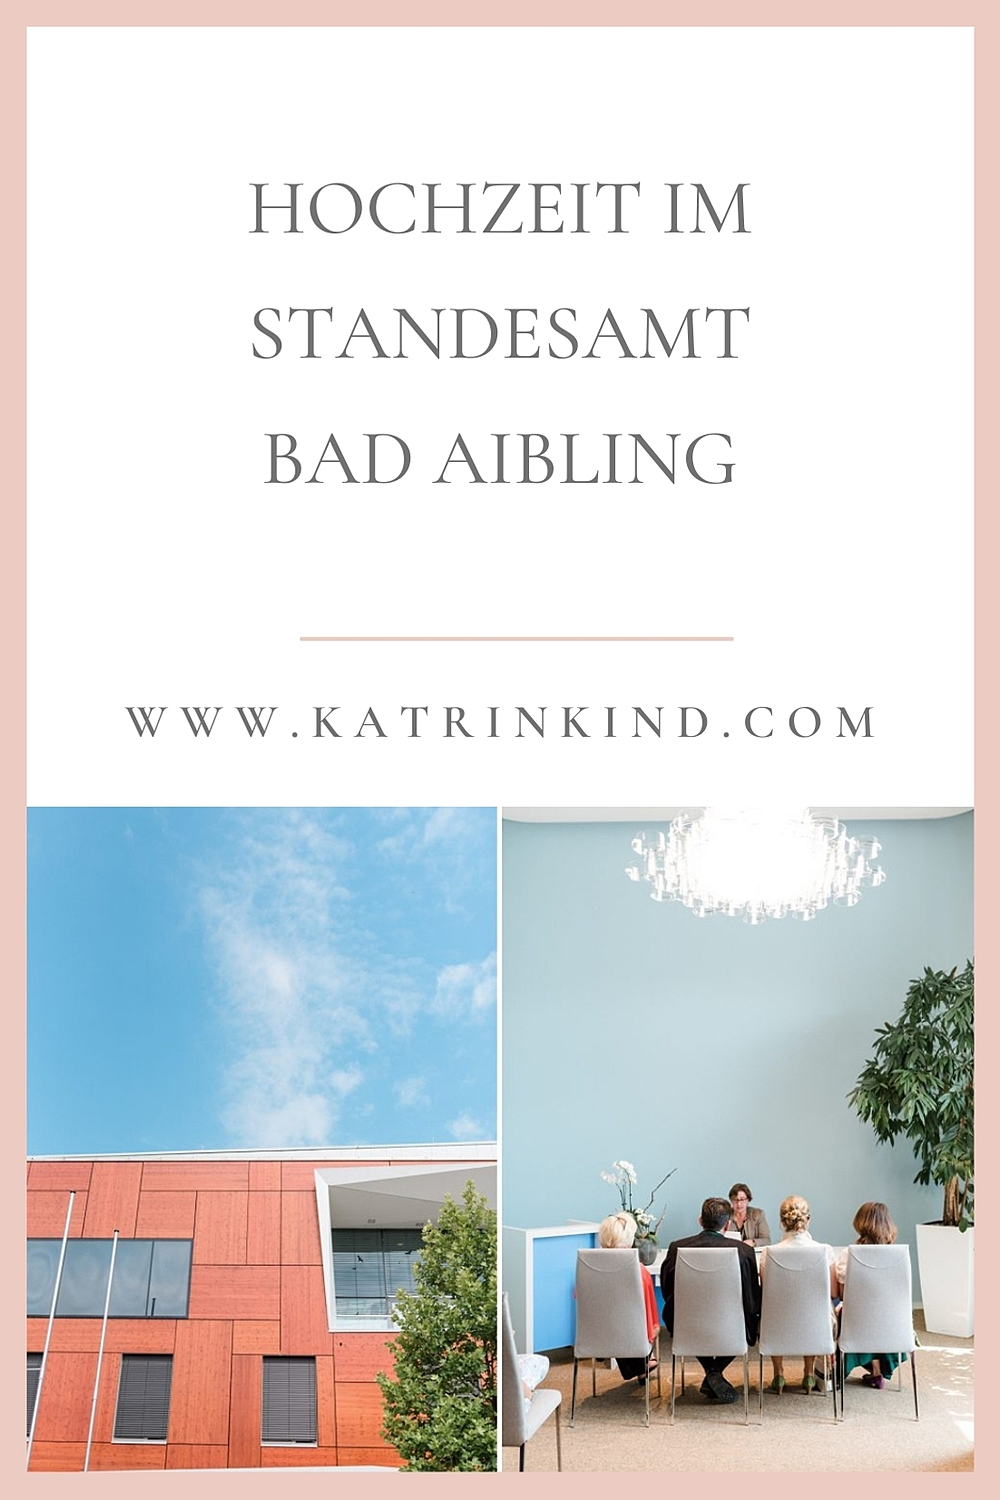 Standesamt Bad Aibling